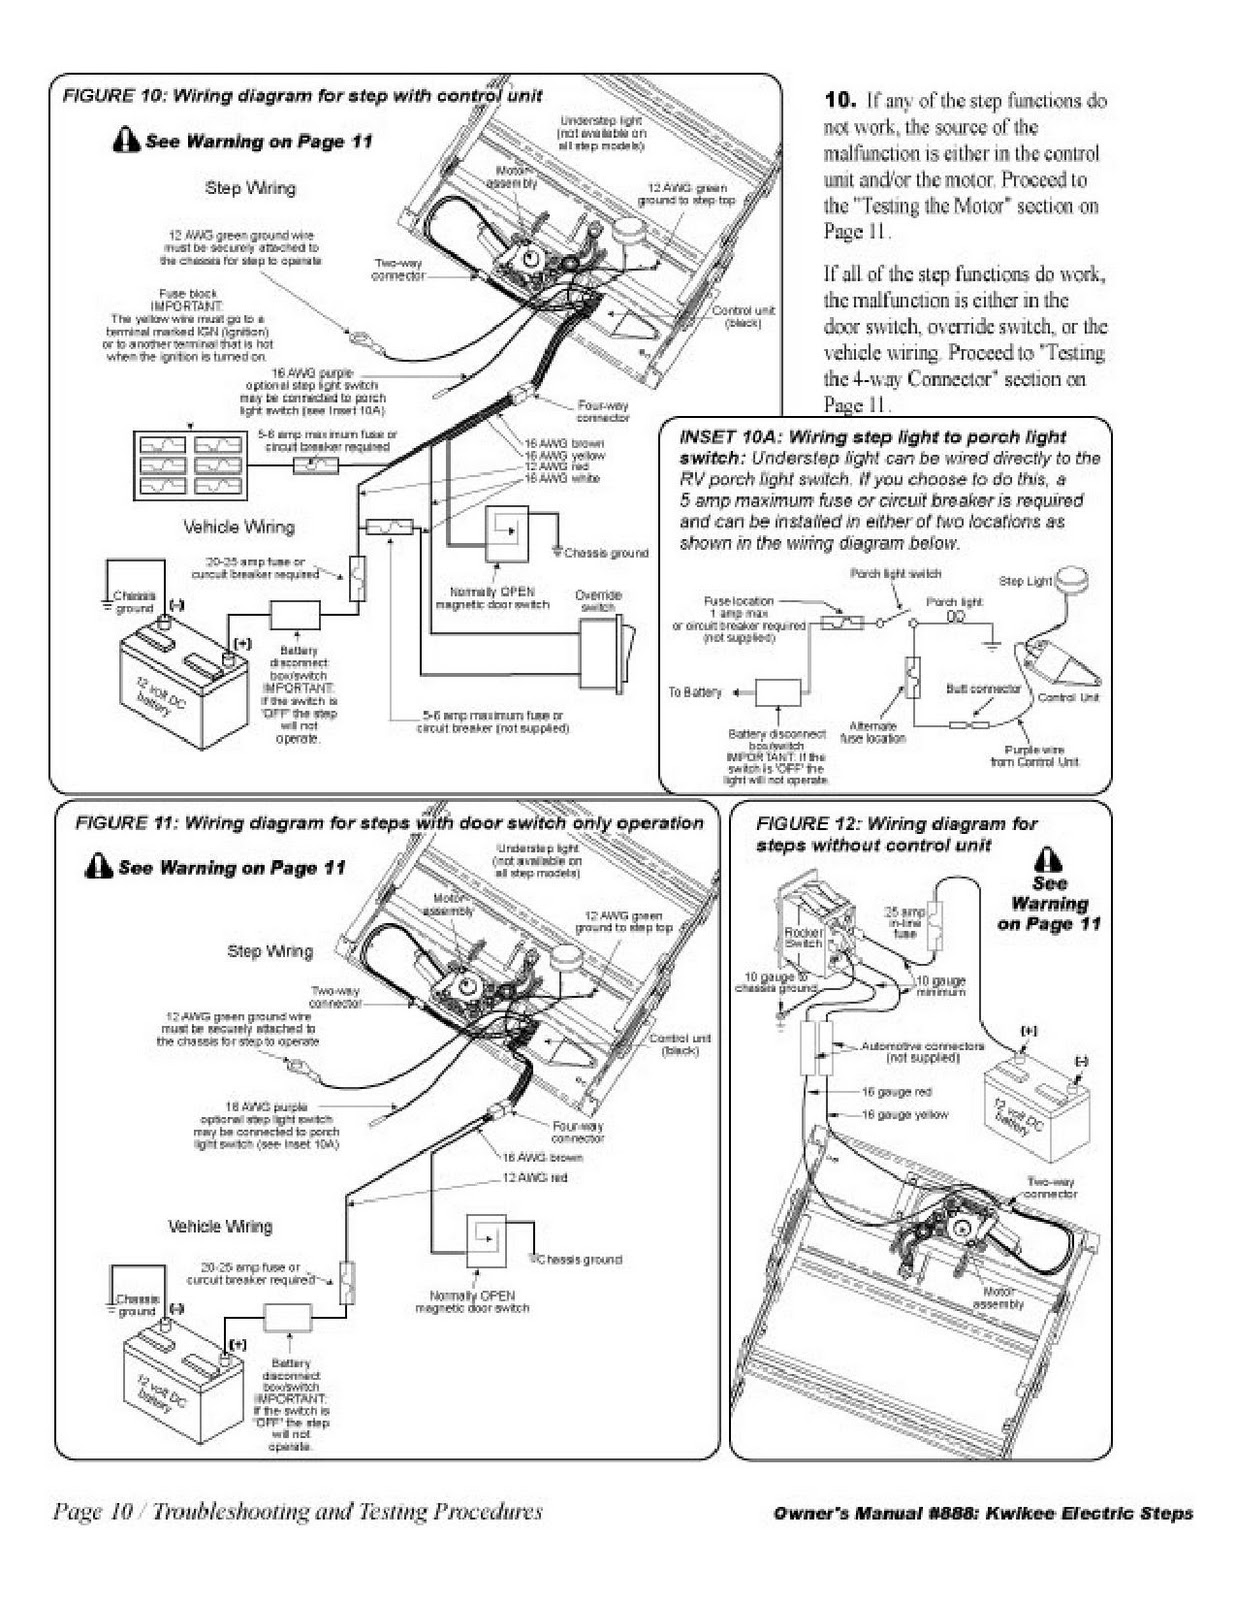 Kwikee Wiring Diagram Great Design Of Fleetwood Rv Schematics 1983 Pace Arrow Owners Manuals Electric Step Control Unit Series